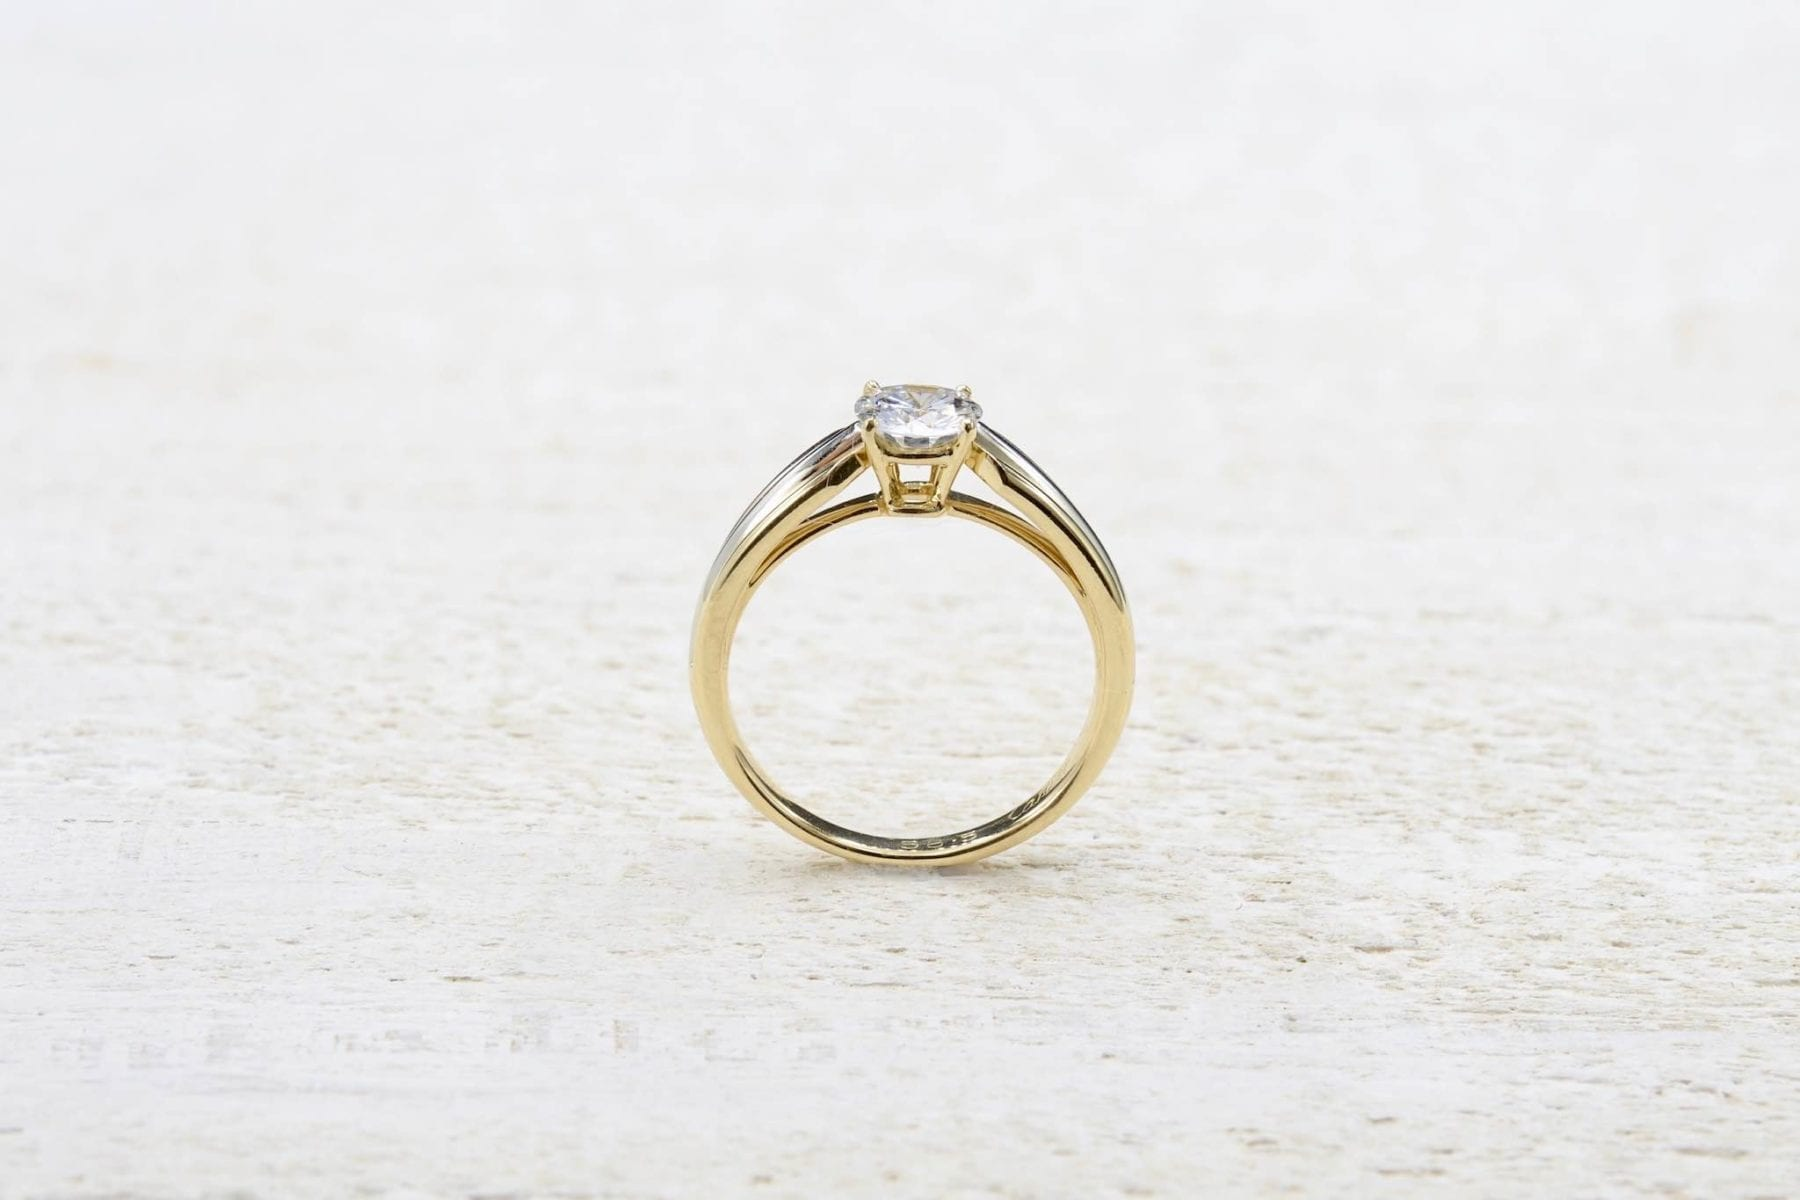 18k gold solitaire ring